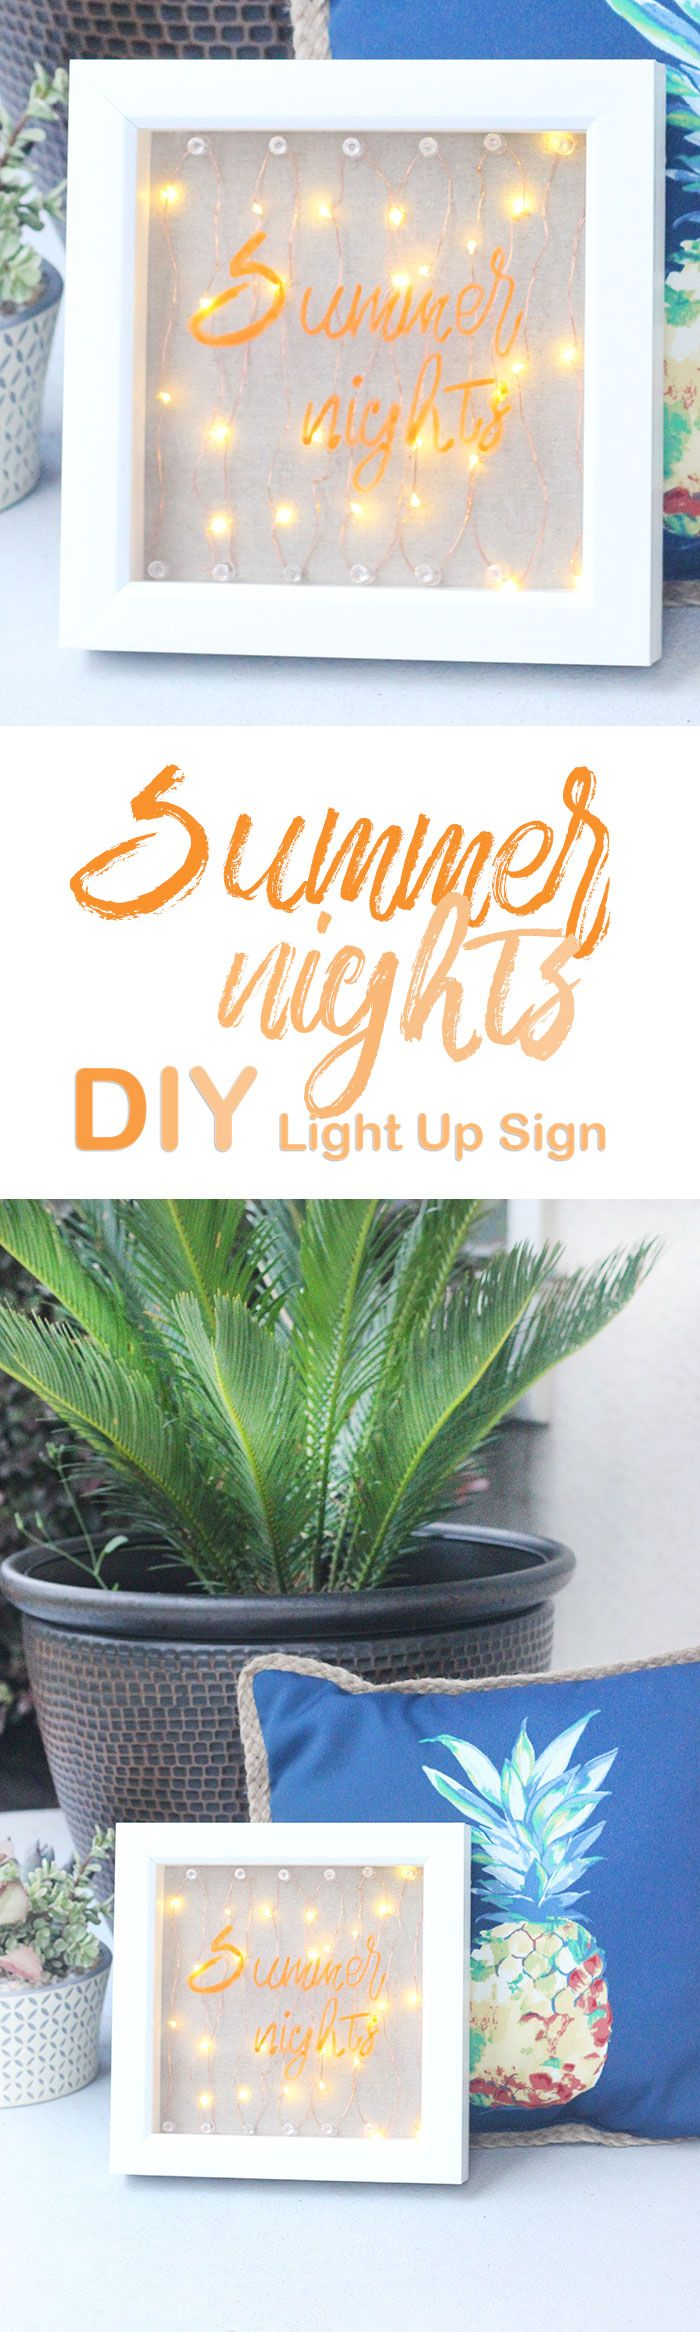 "Light Up Sign DIY. ""Summer Nights"". So easy to make with LED battery lights. #ad #MadetoLastWM"